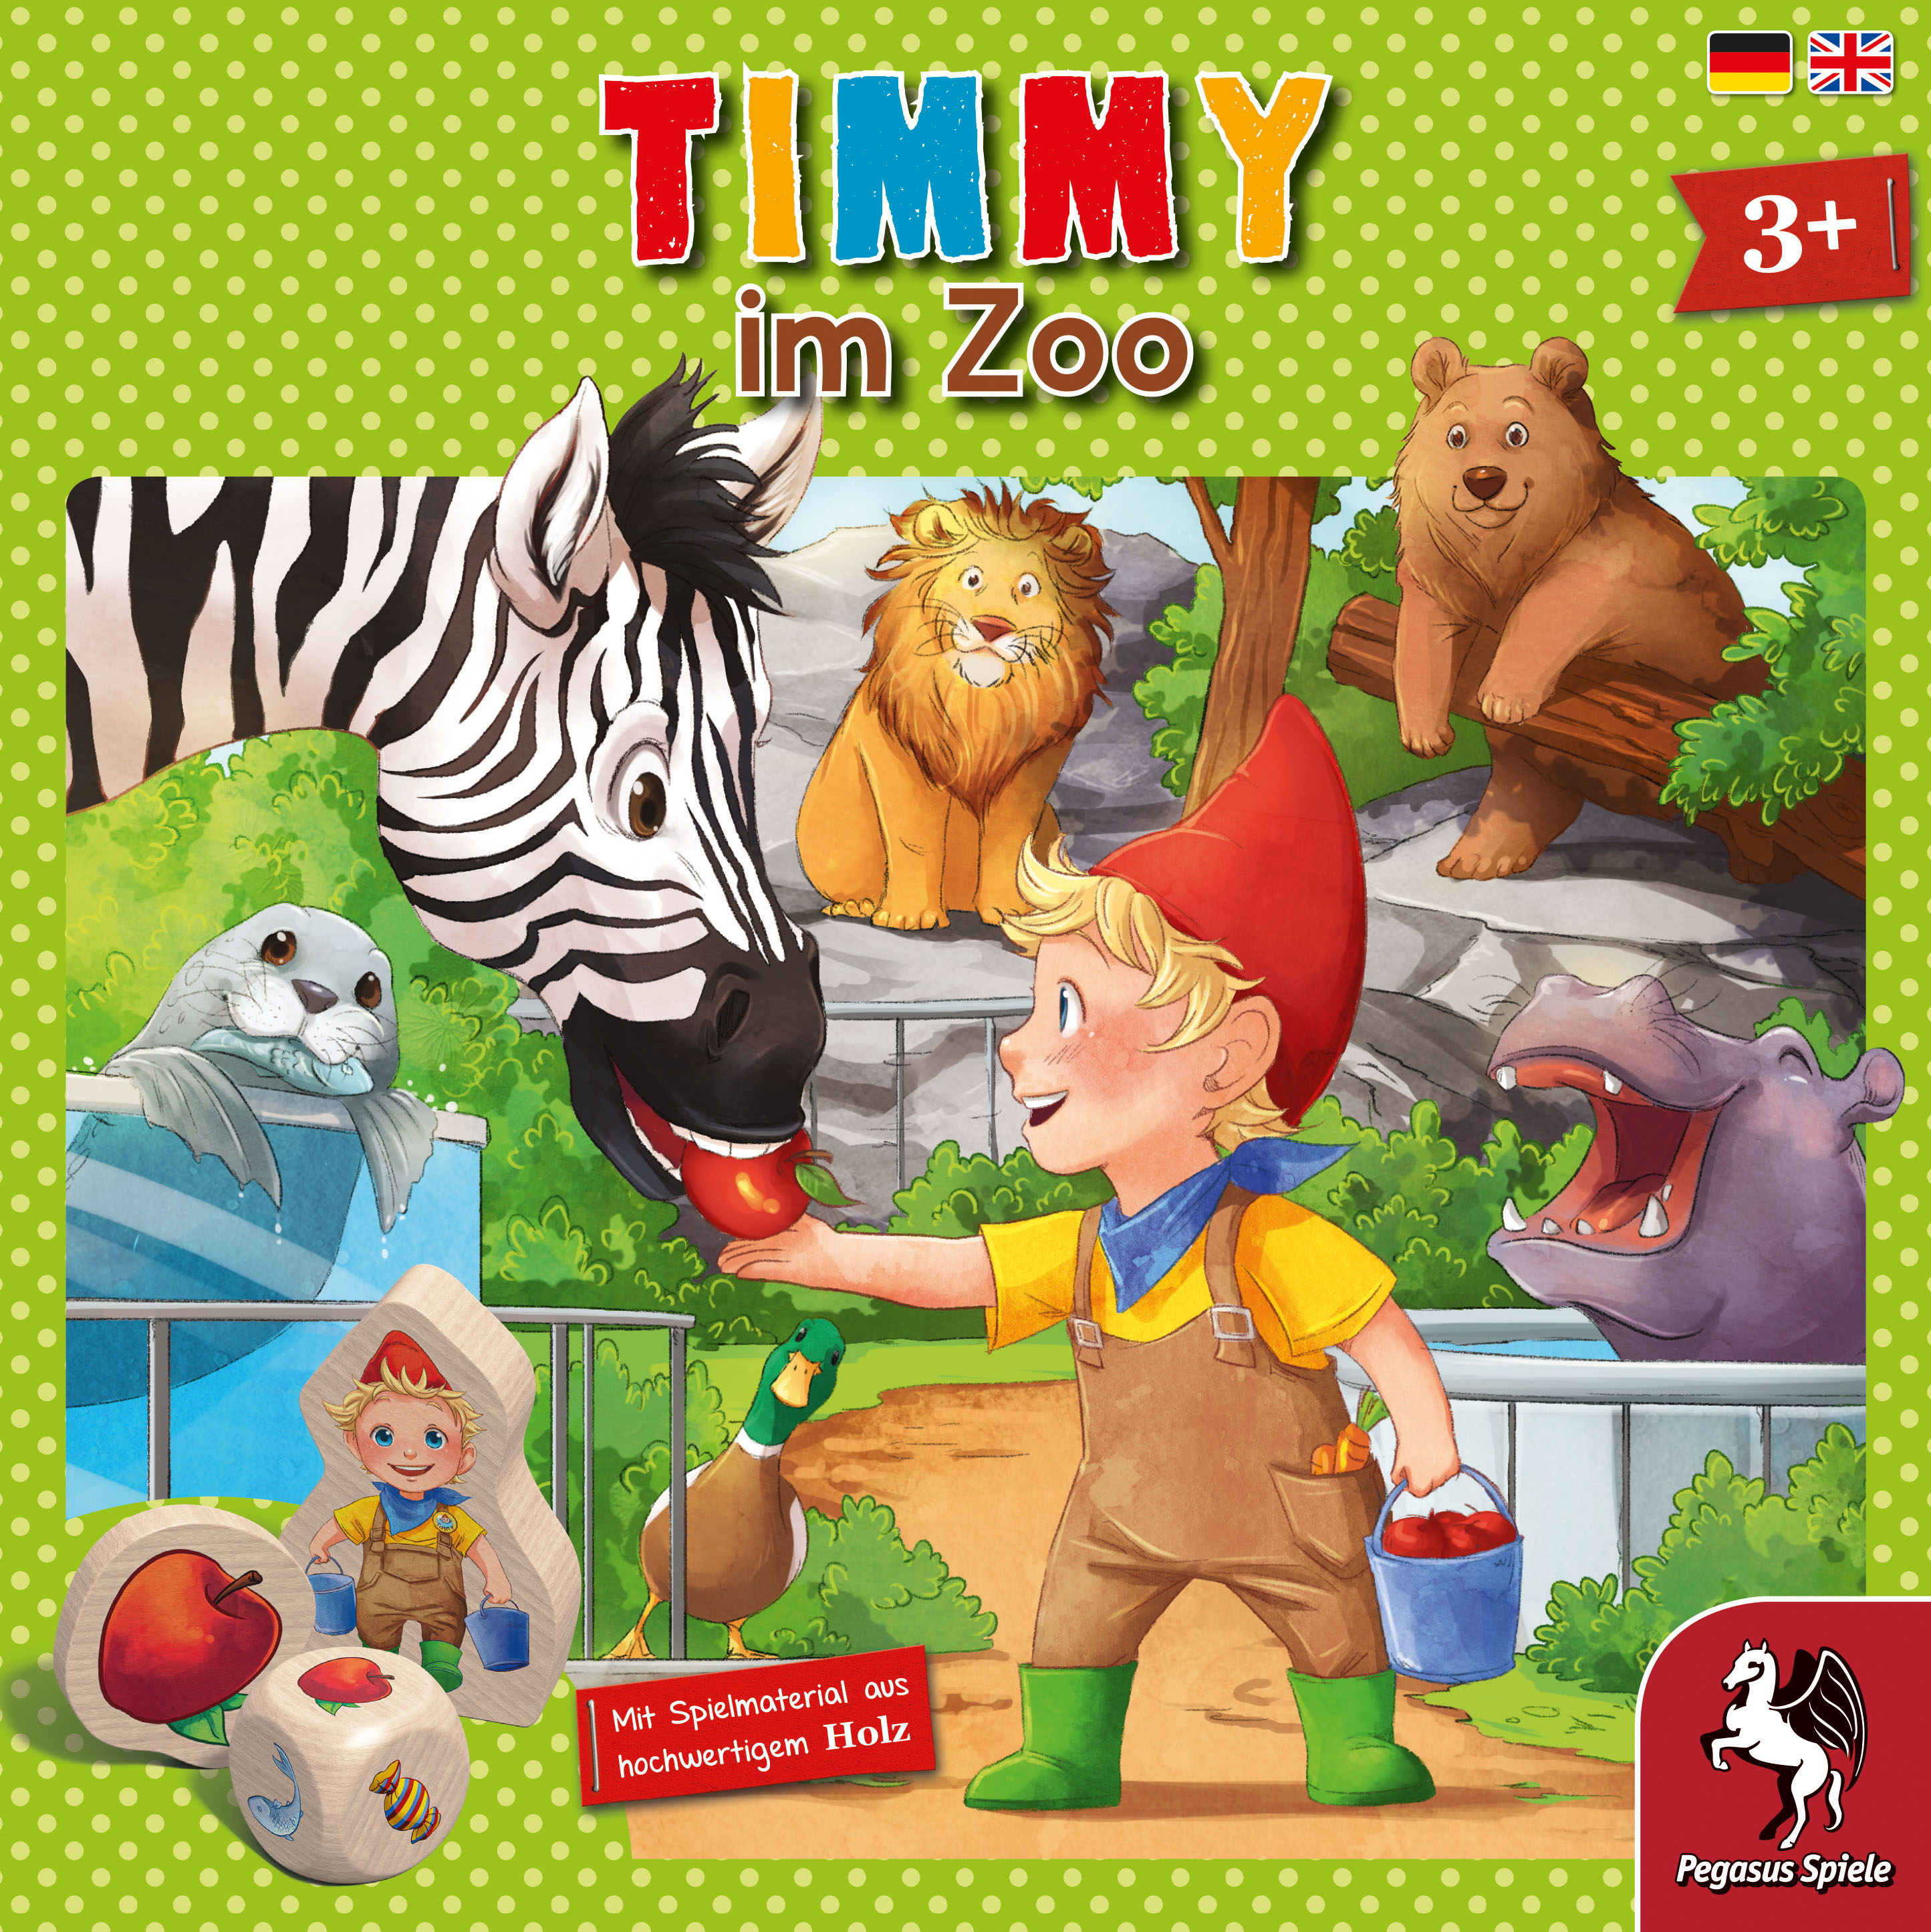 Timmy im Zoo | Timmy | Themengebiete | Games | Pegasus.de - Playing is  passion!